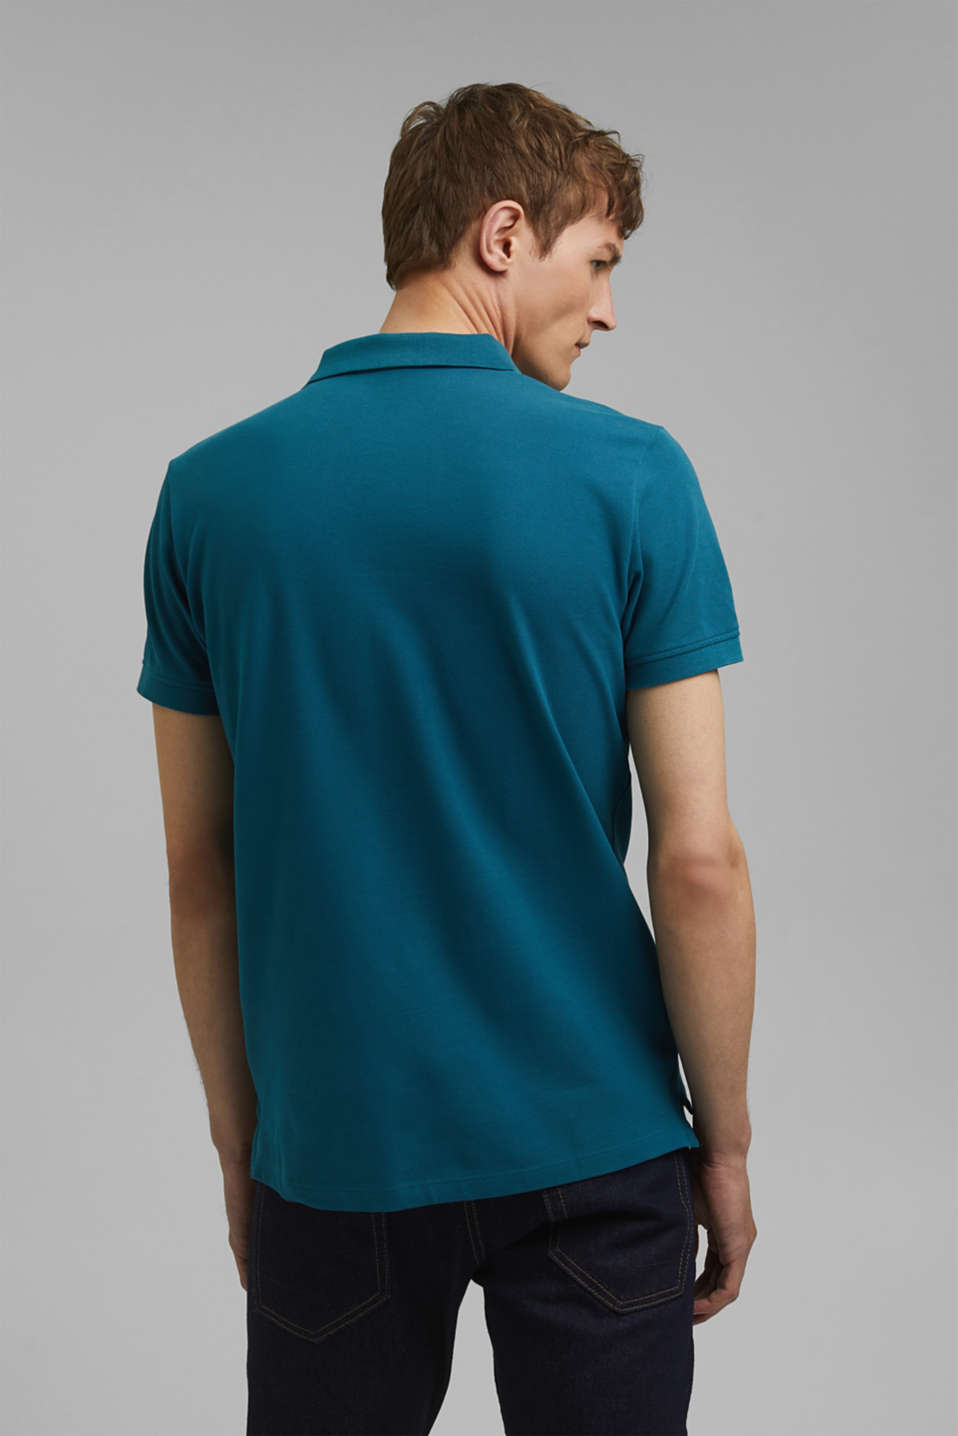 Piqué polo shirt in 100% cotton, PETROL BLUE, detail image number 3